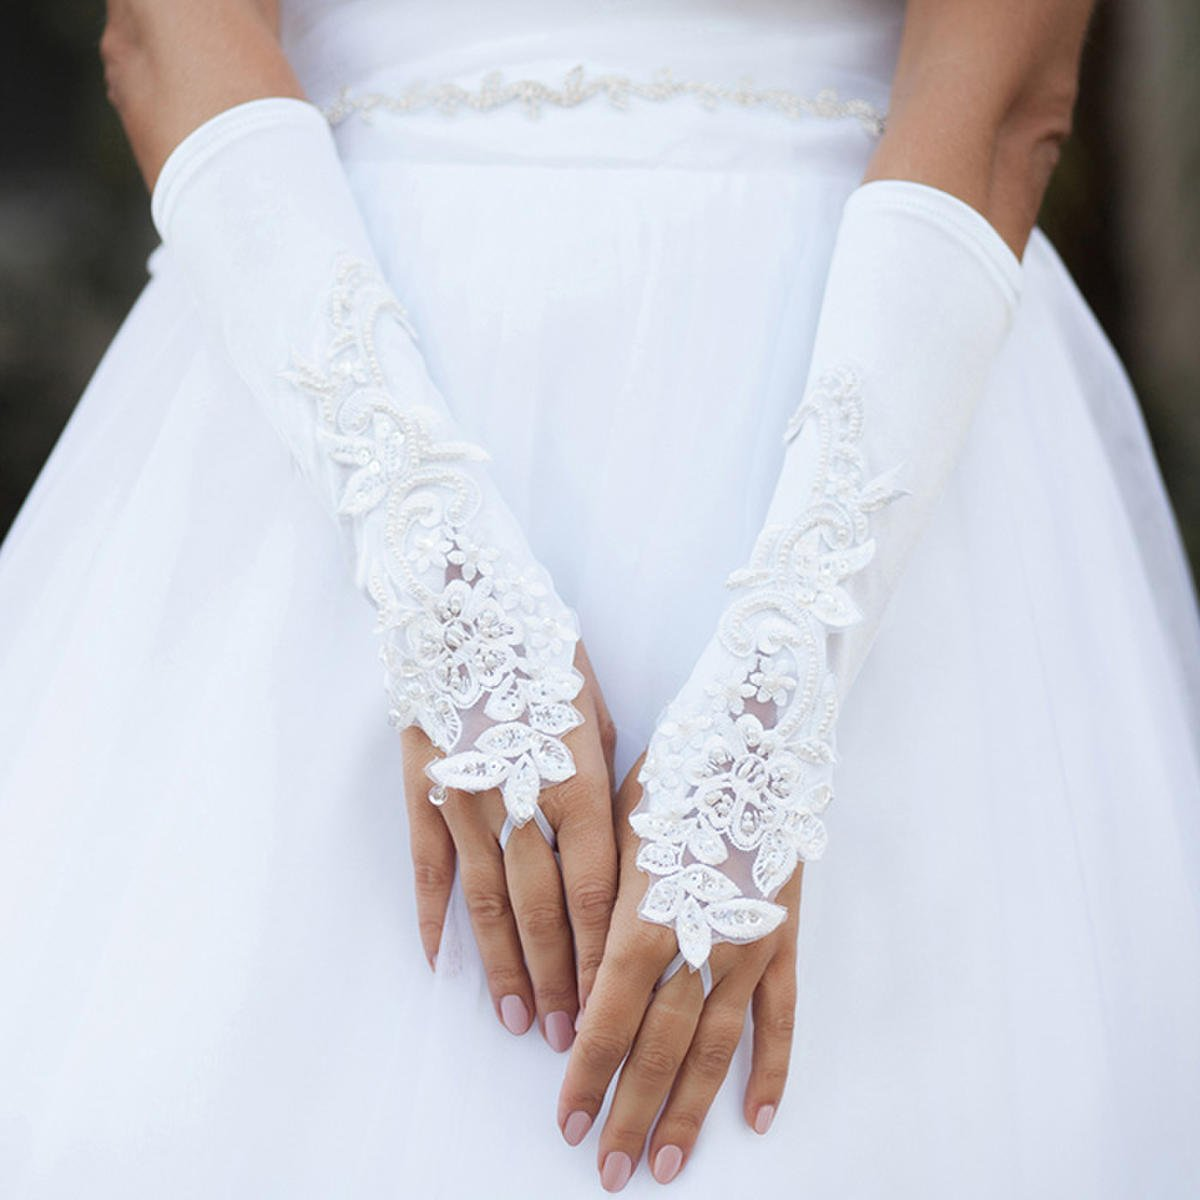 WONA TRADING INC - Lace Flower Satin Fingerless Wedding Glove